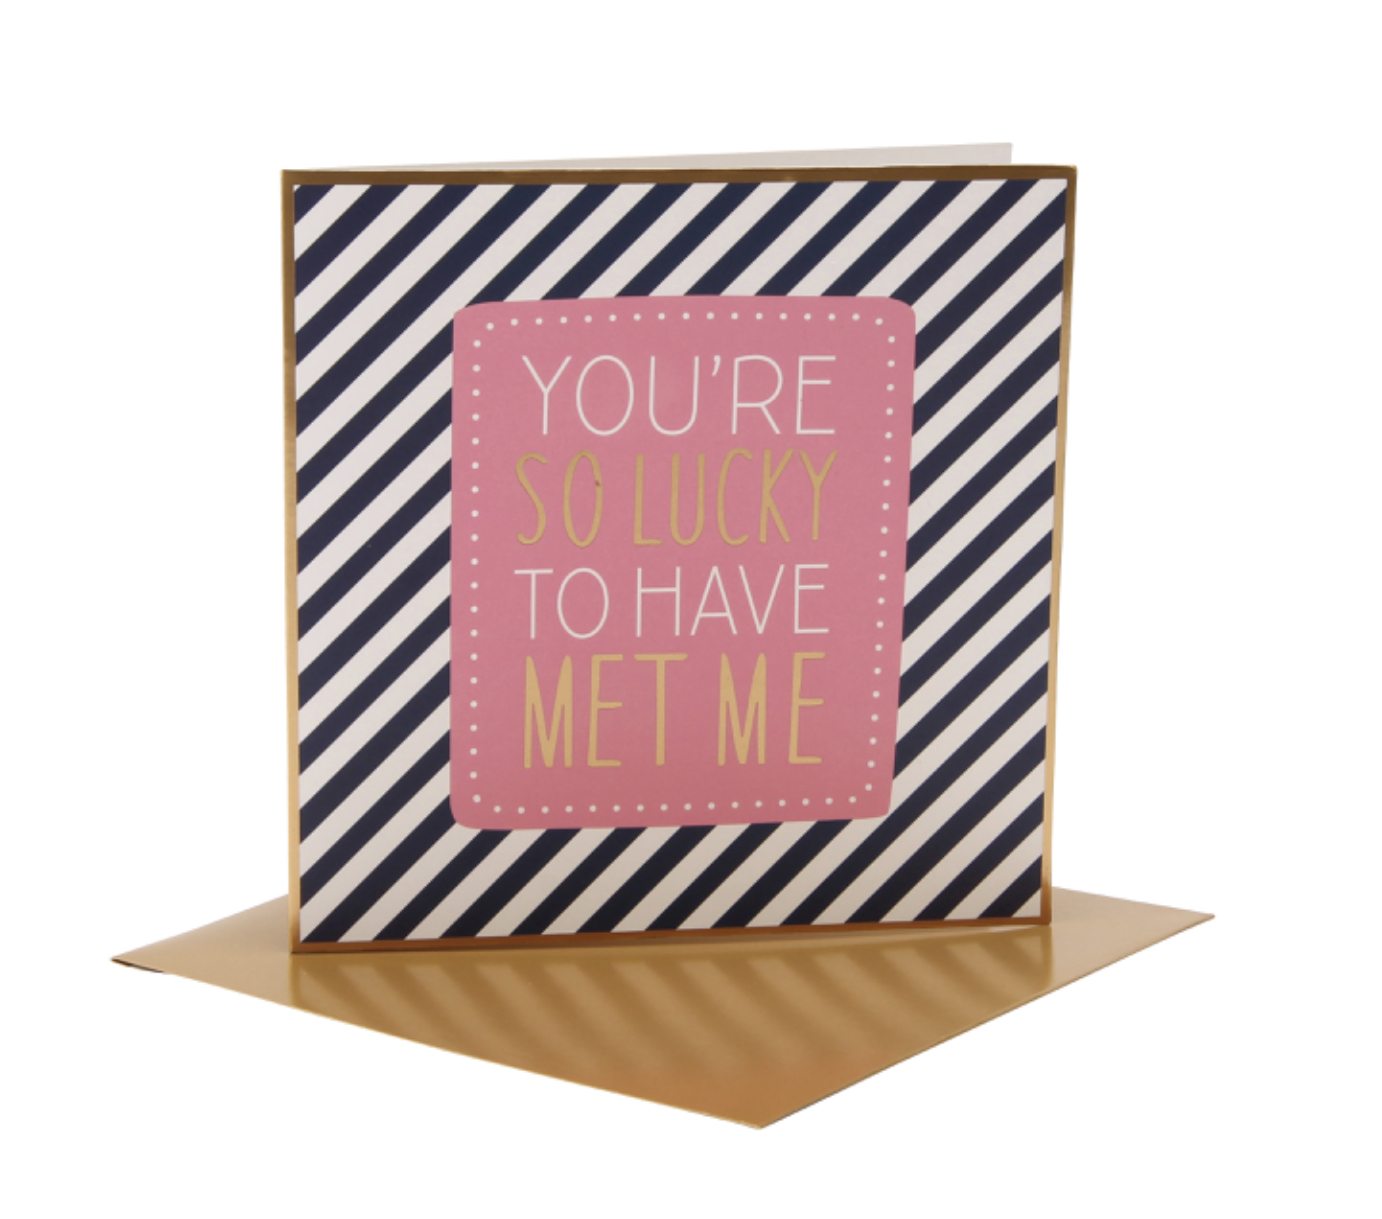 You're so lucky to have met me. Anniversary/ birthday card